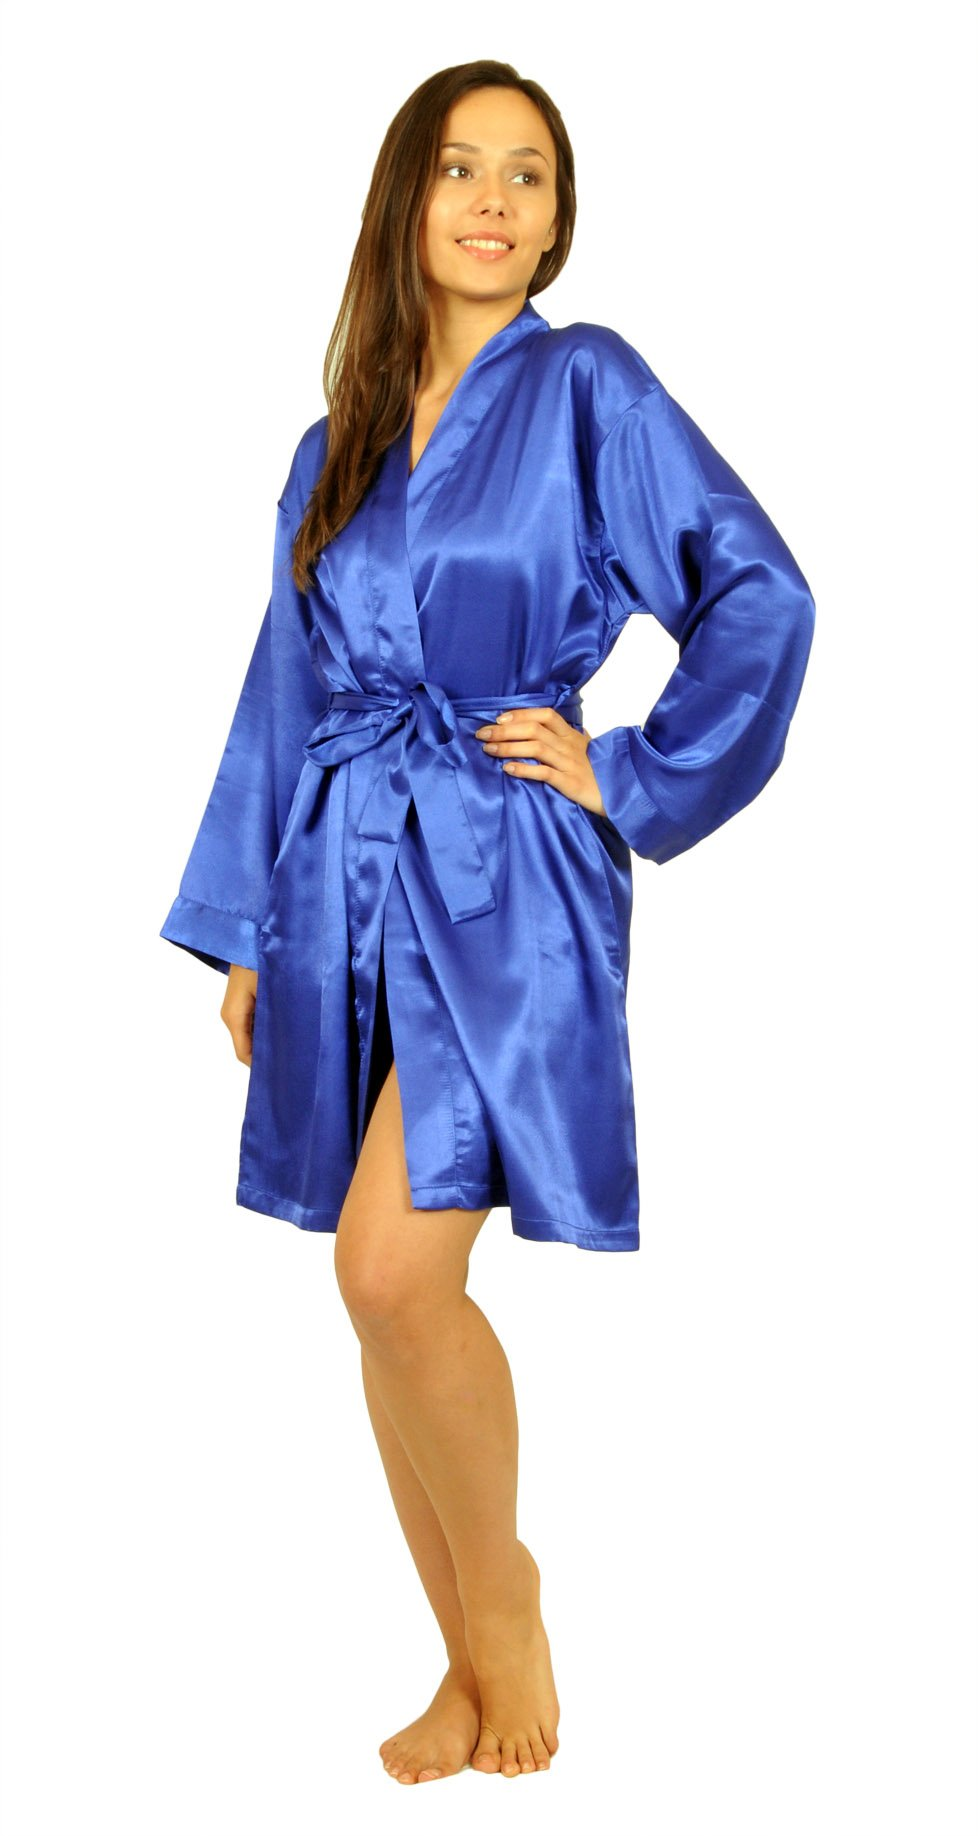 Satin Robe, Five Color Choices, Sizes (S, M, L, XL, 2X), Up2date Fashion Style#Gwn11 (2X, Royal Blue)